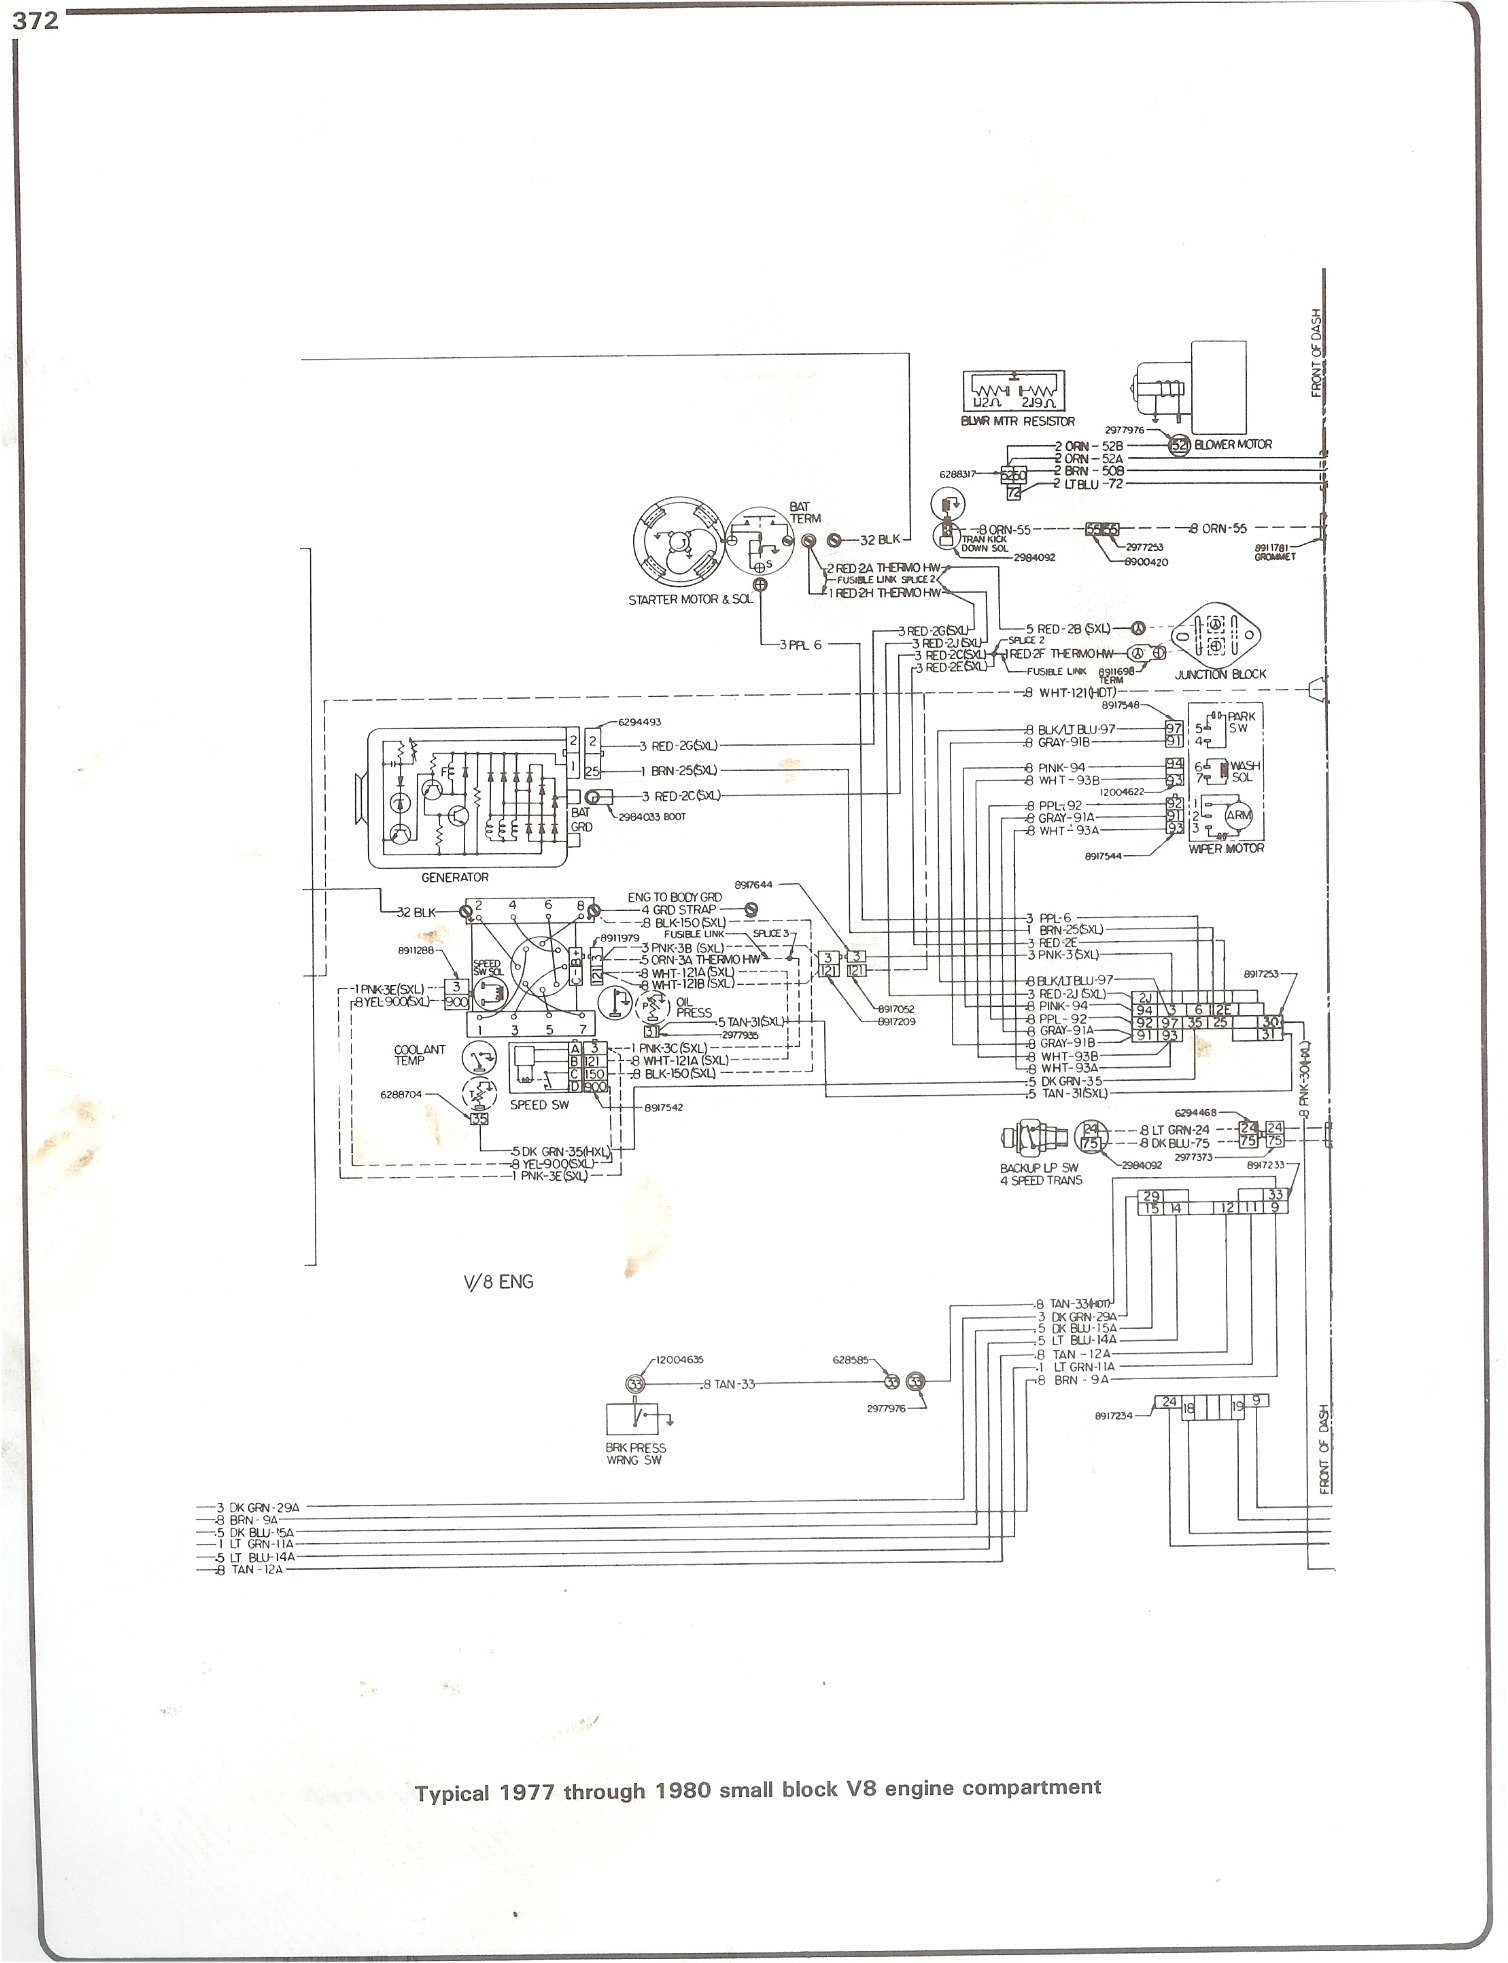 1983 chevy s10 wiring diagram